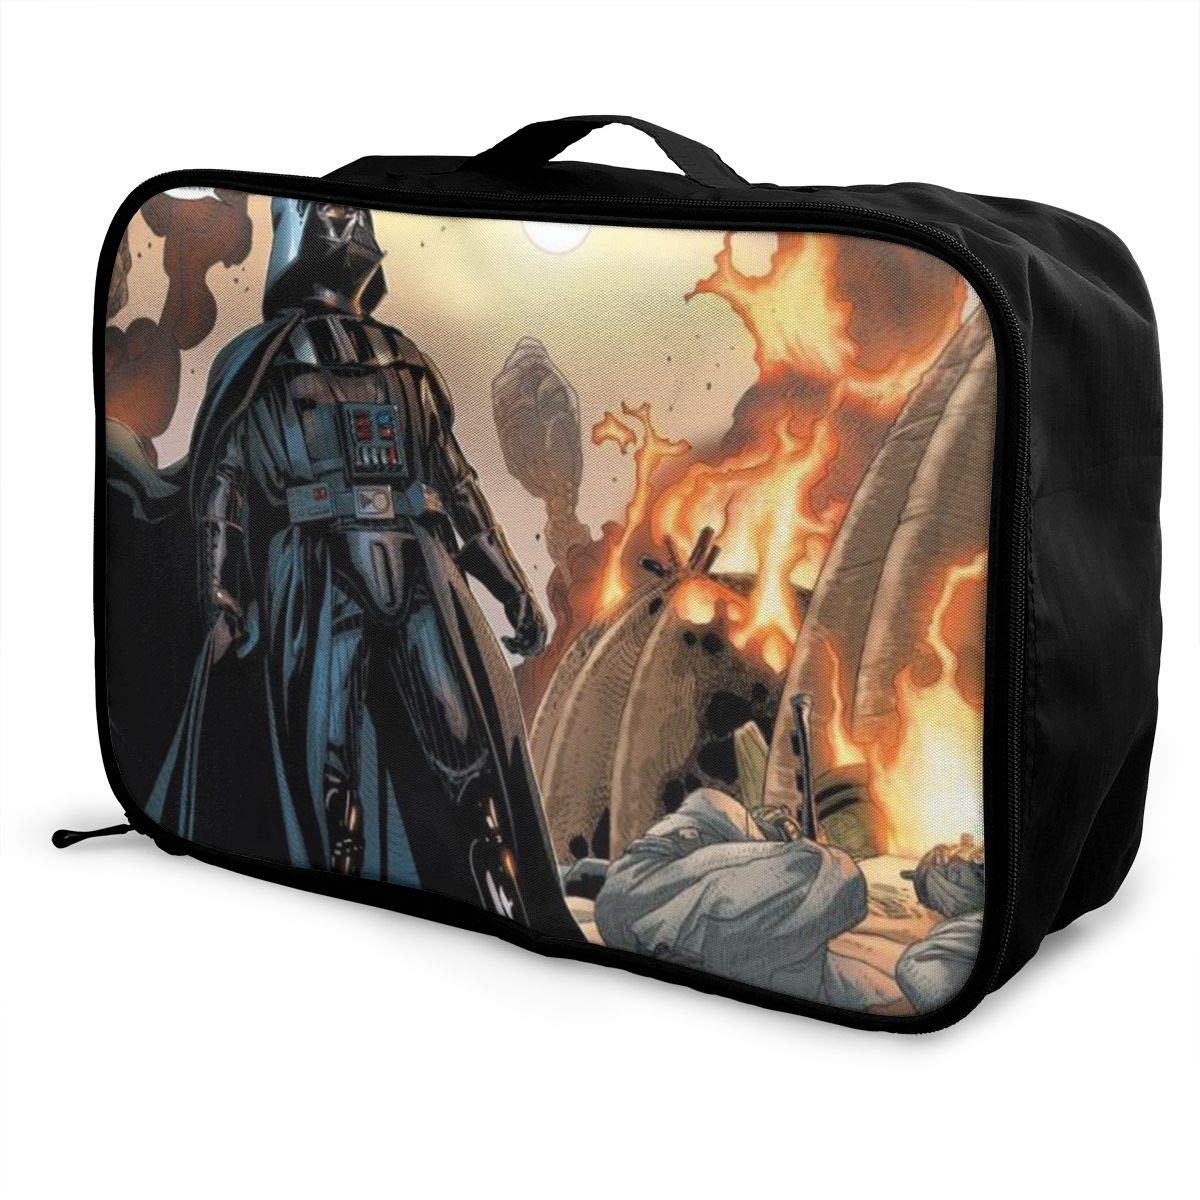 BOKAIKAI1306 Fierce D-Darth Vader Unisex Adults Fashion Lightweight Large Capacity Portable Large Travel Duffel Bag Mens Woman Luggage Bag 3D Printed Custom Boarding Box